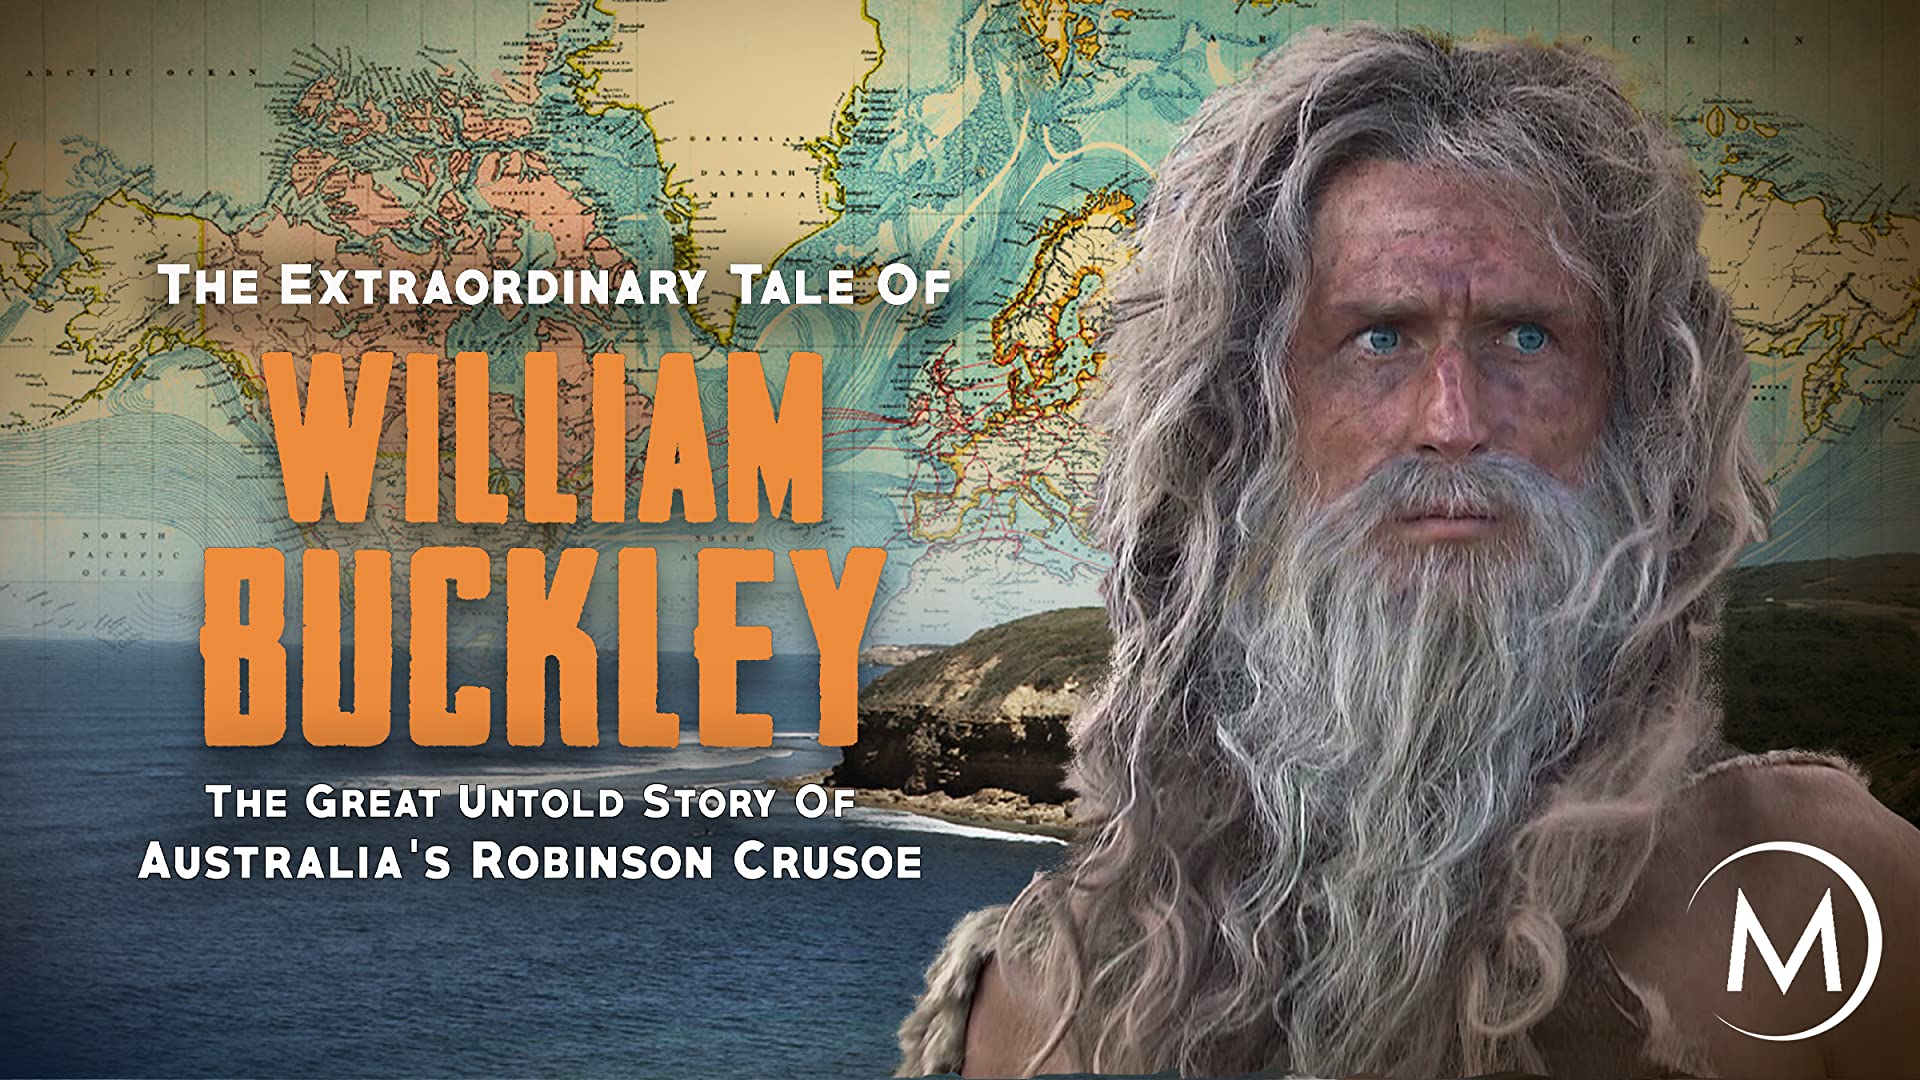 The Extraordinary Tale of William Buckley: The great untold story of Australia's Robinson Crusoe